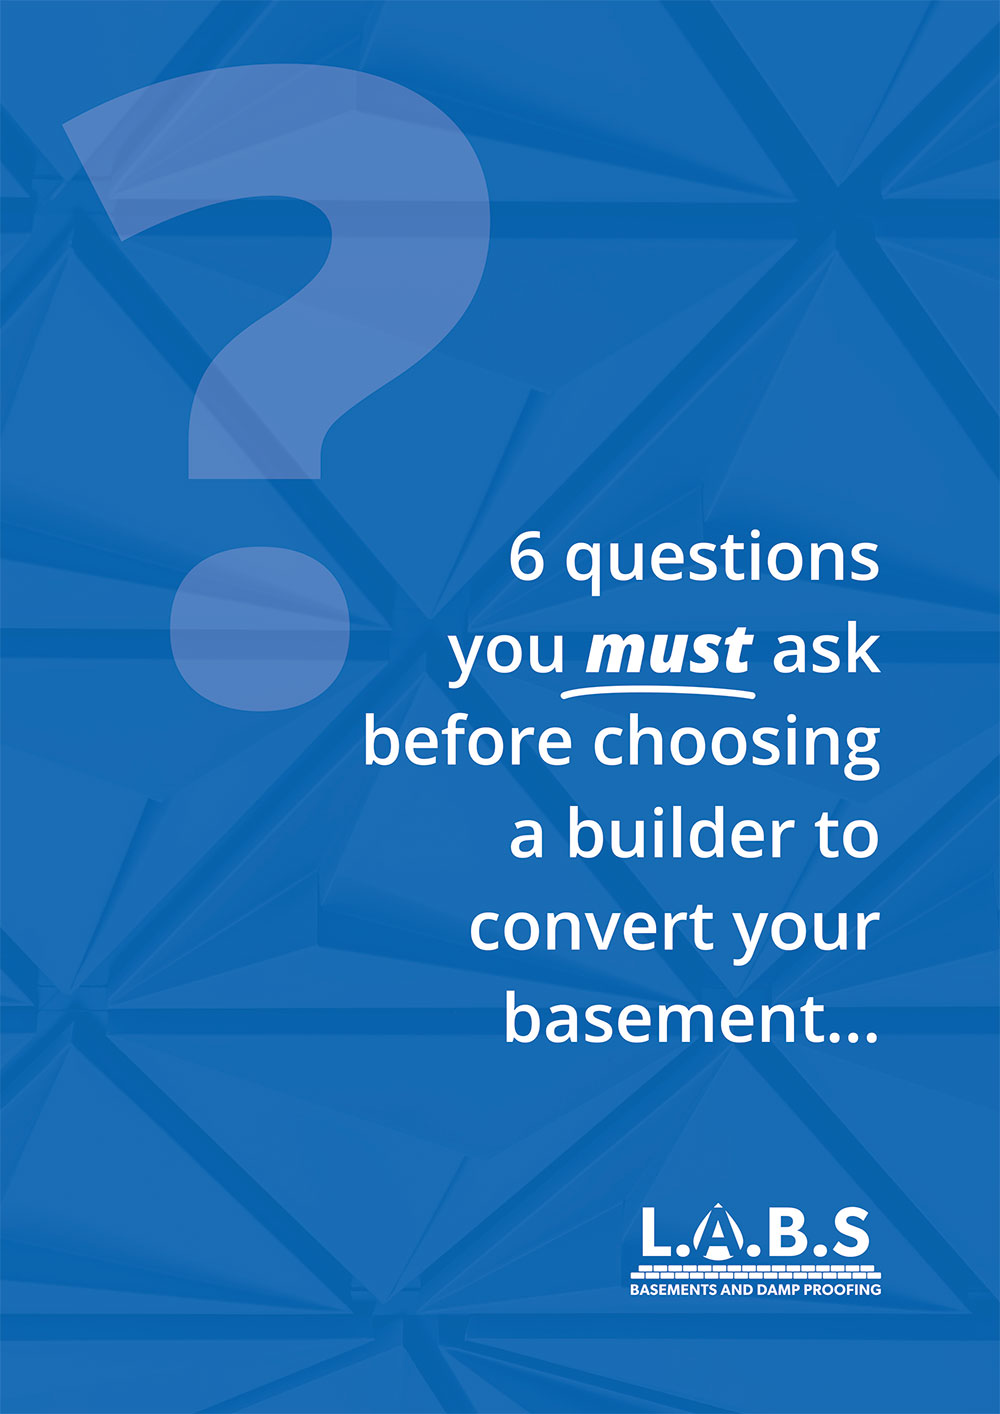 6 Questions to ask before Converting Your Basement